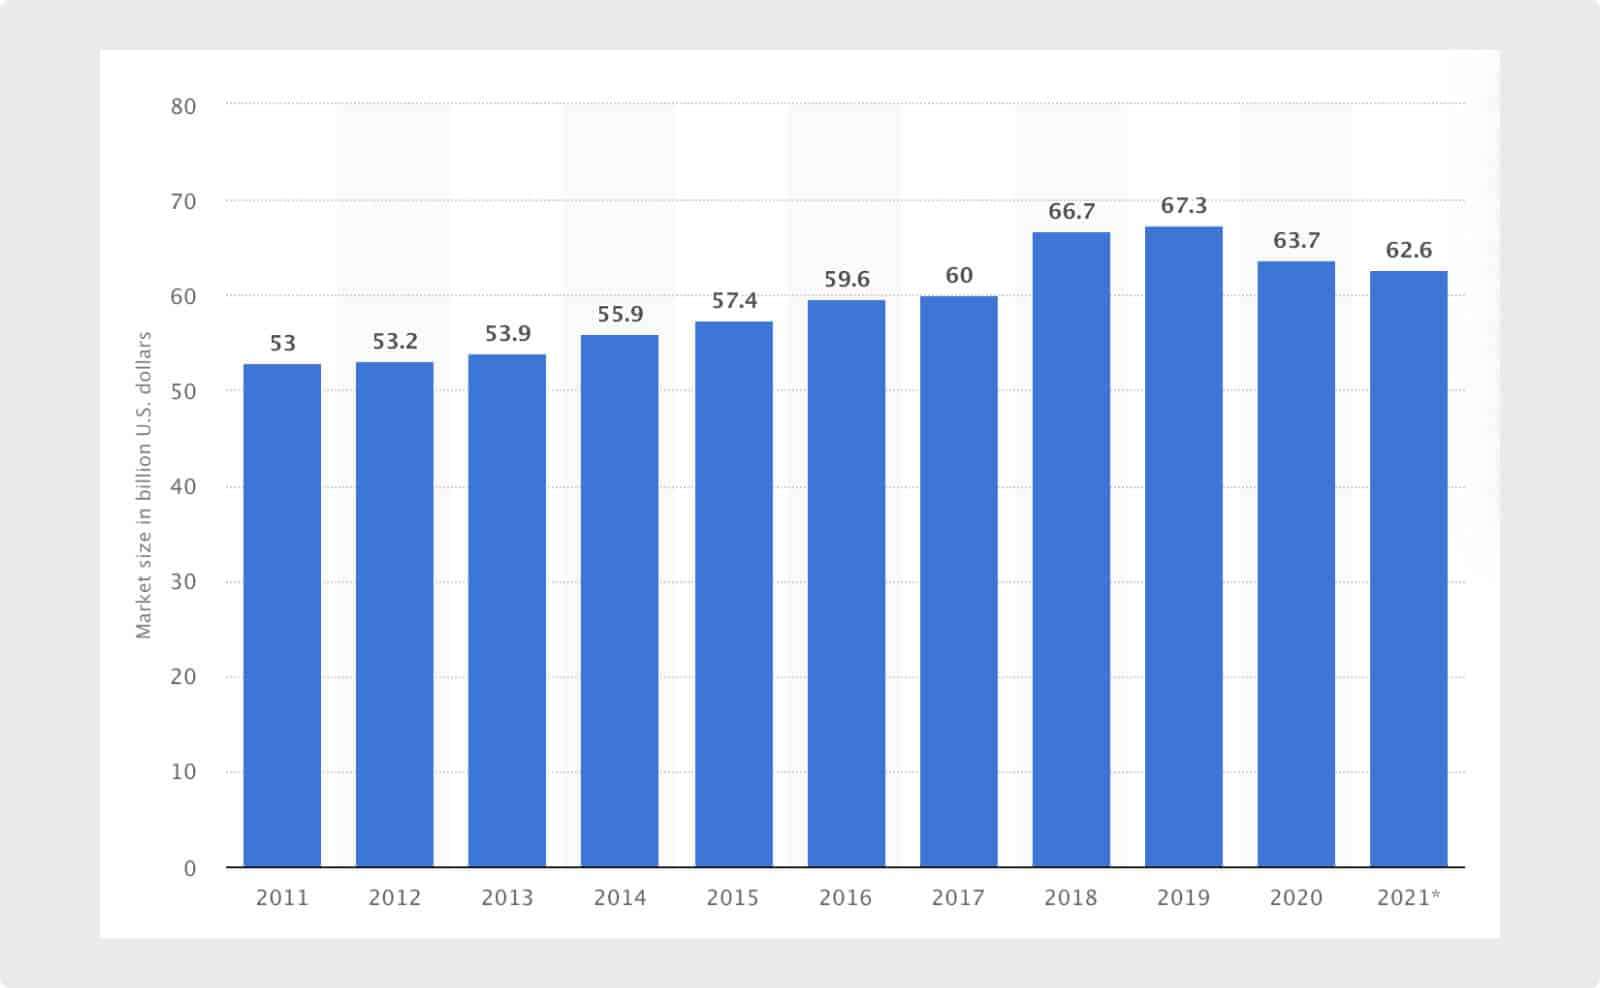 The market size of janitorial services in the United States from 2011 to 2021